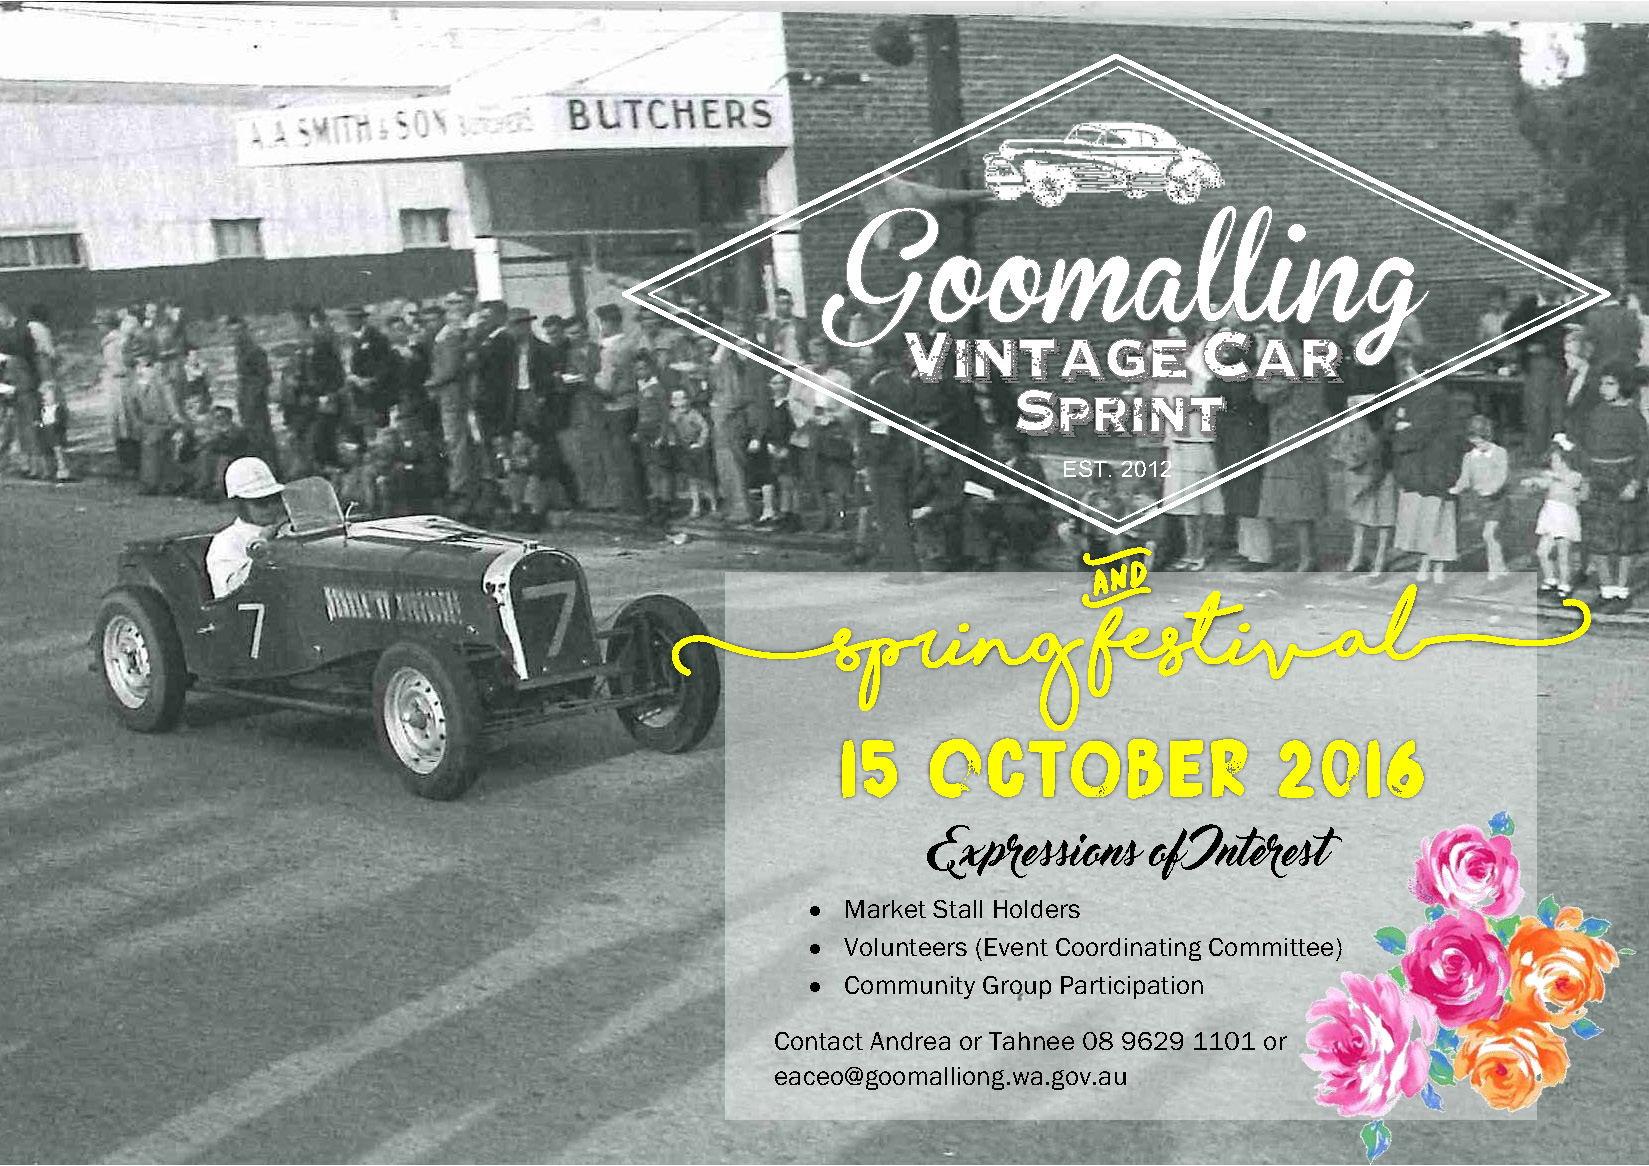 Vintage Car Rally Goomalling 15 October 2016